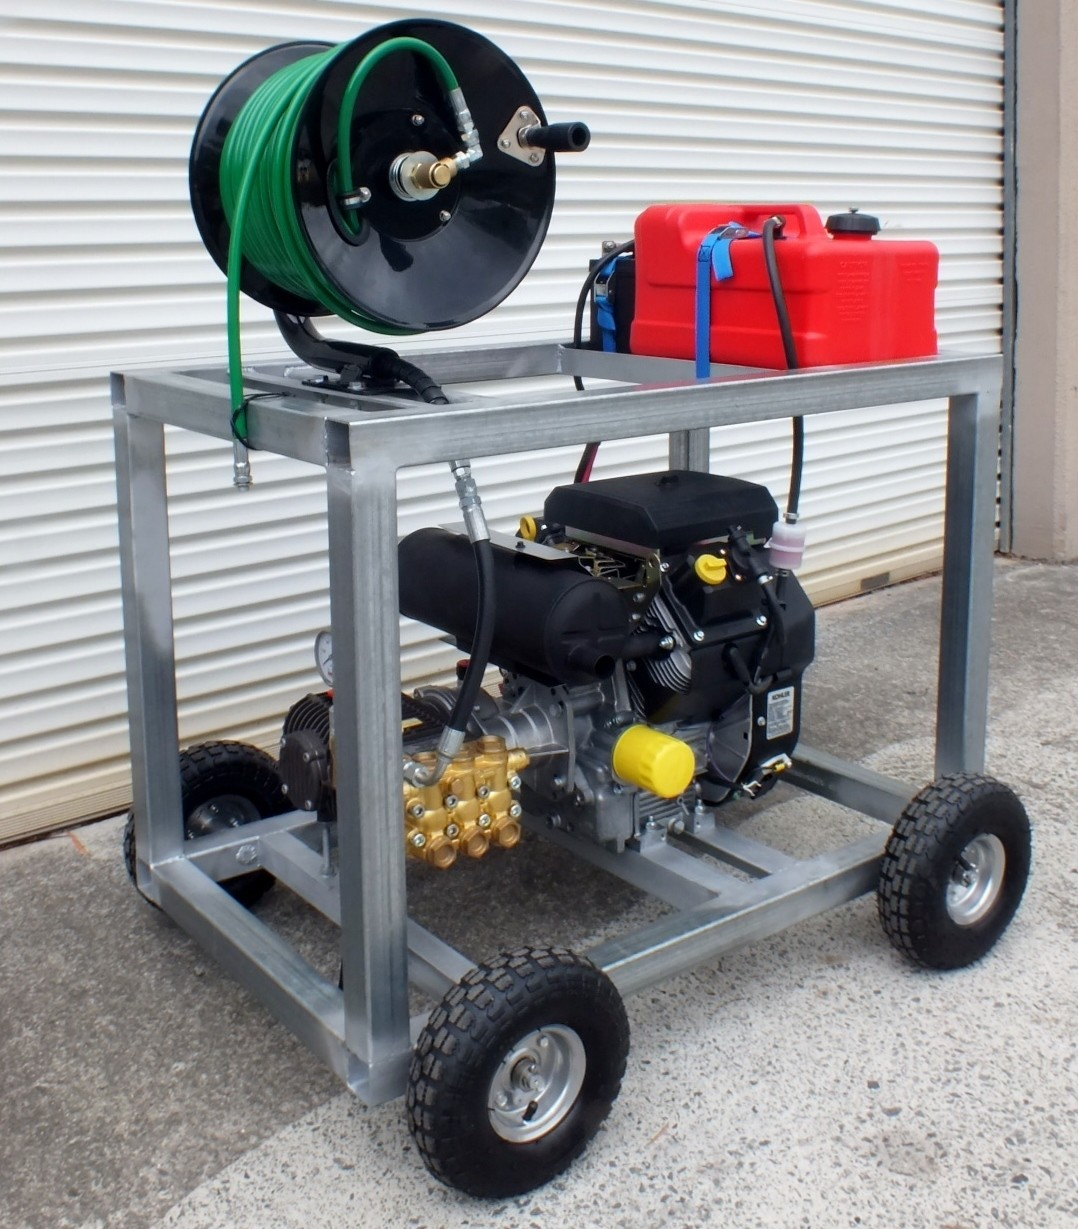 OUT OF STOCK, NEW STOCK AUG 2020 Kohler 20HP V Twin & Comet 4000PSI 20LPM Sewer Drain Cleaner Jetter Hose & Reel